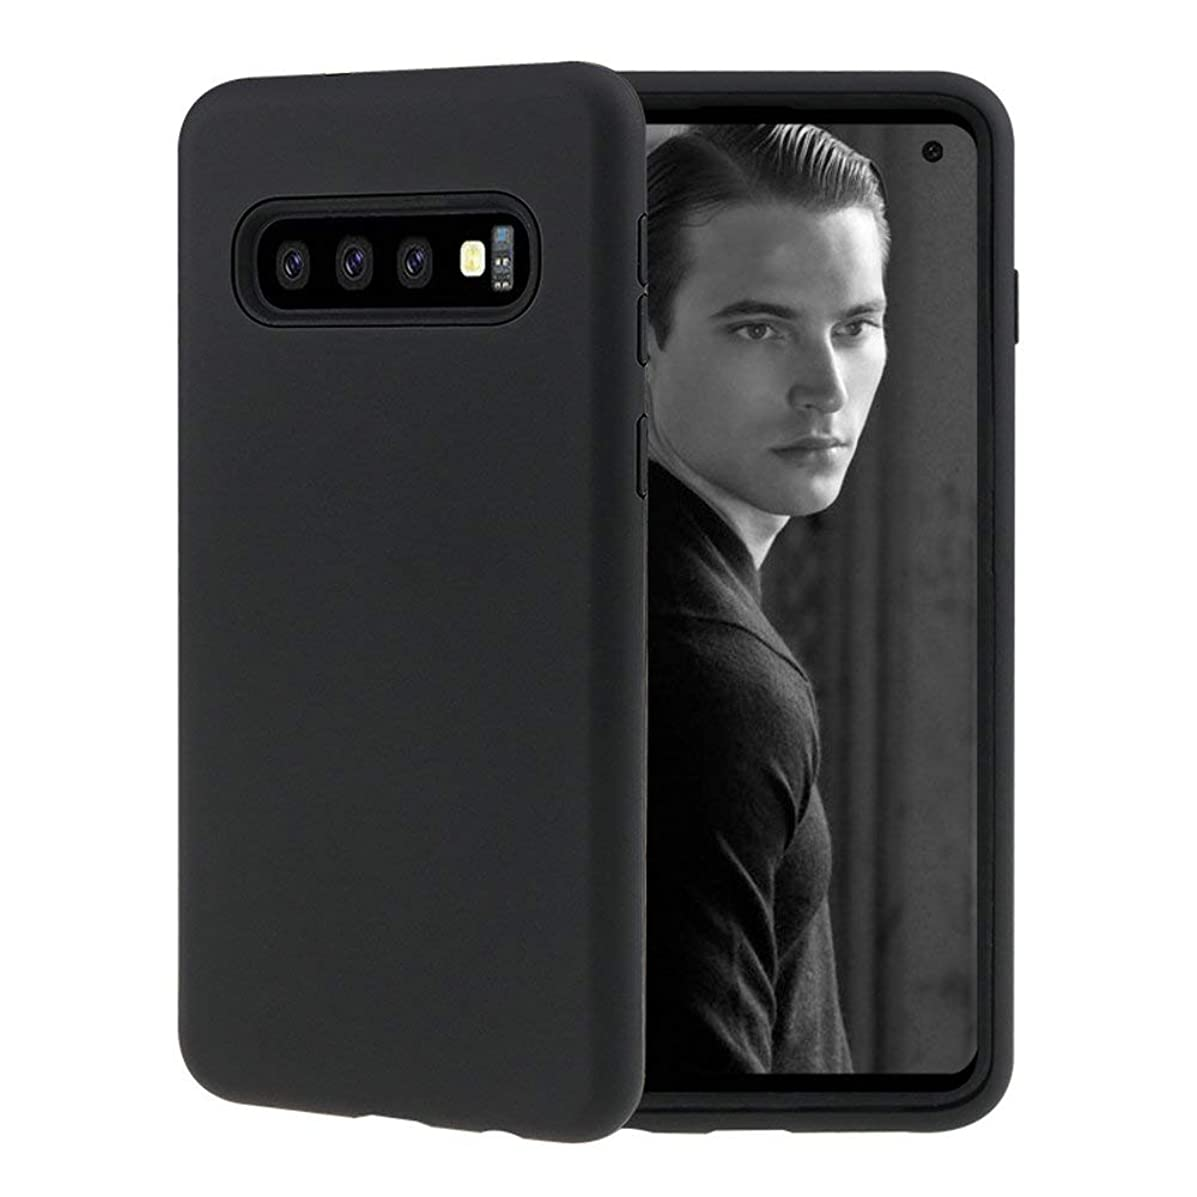 Aonet Compatible with Samsung Galaxy S10+ Phone Case, 3 in 1 Heavy Duty Hybrid Shock Absorption Anti-Scratch Phone Cover for Samsung Galaxy S10+ - Black